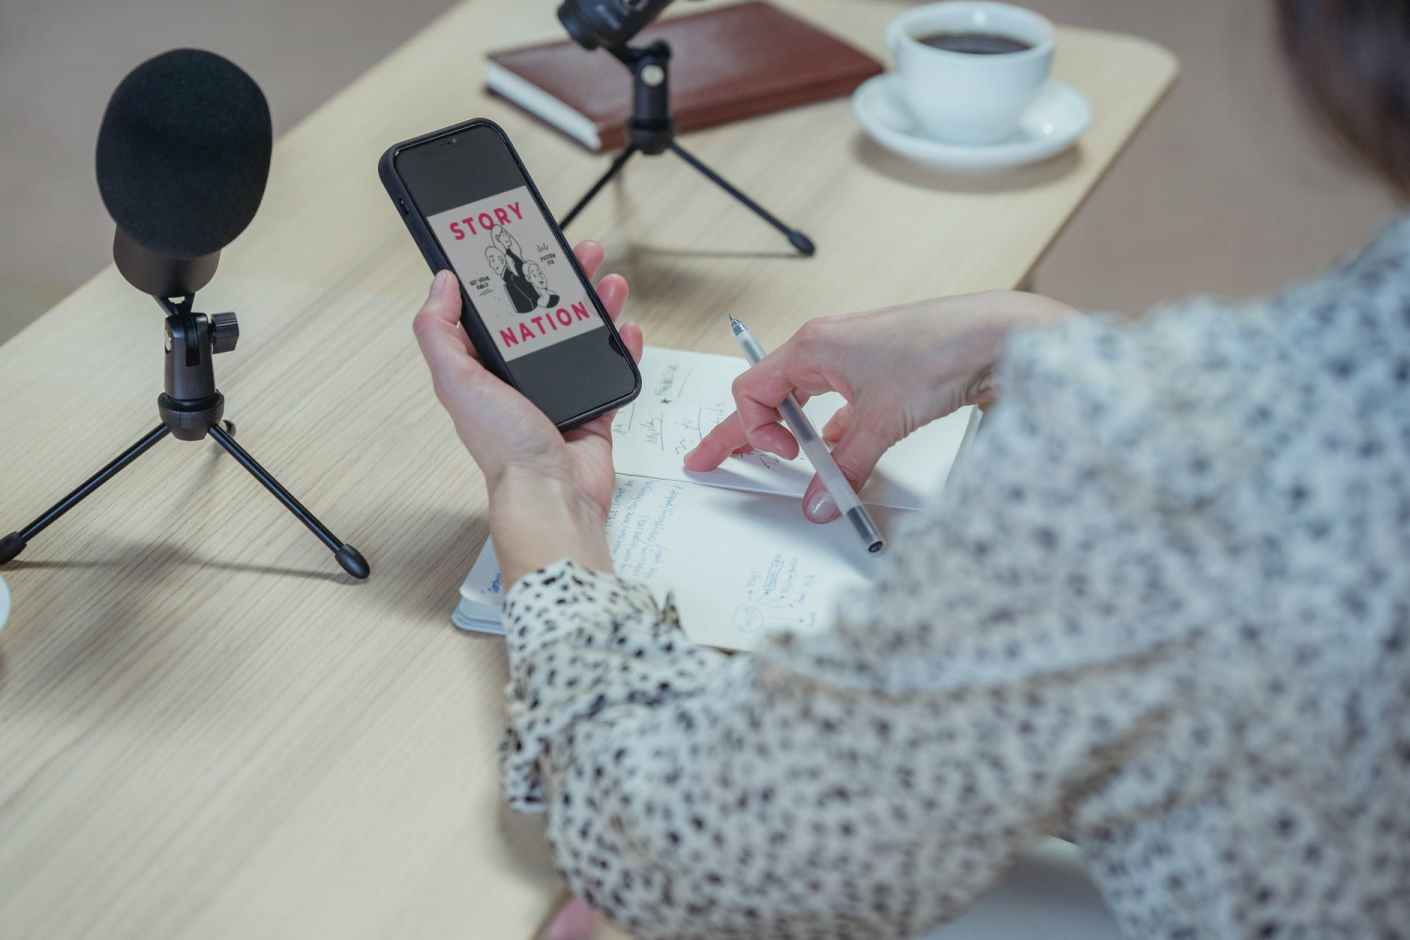 crop unrecognizable woman using smartphone at desk with microphones